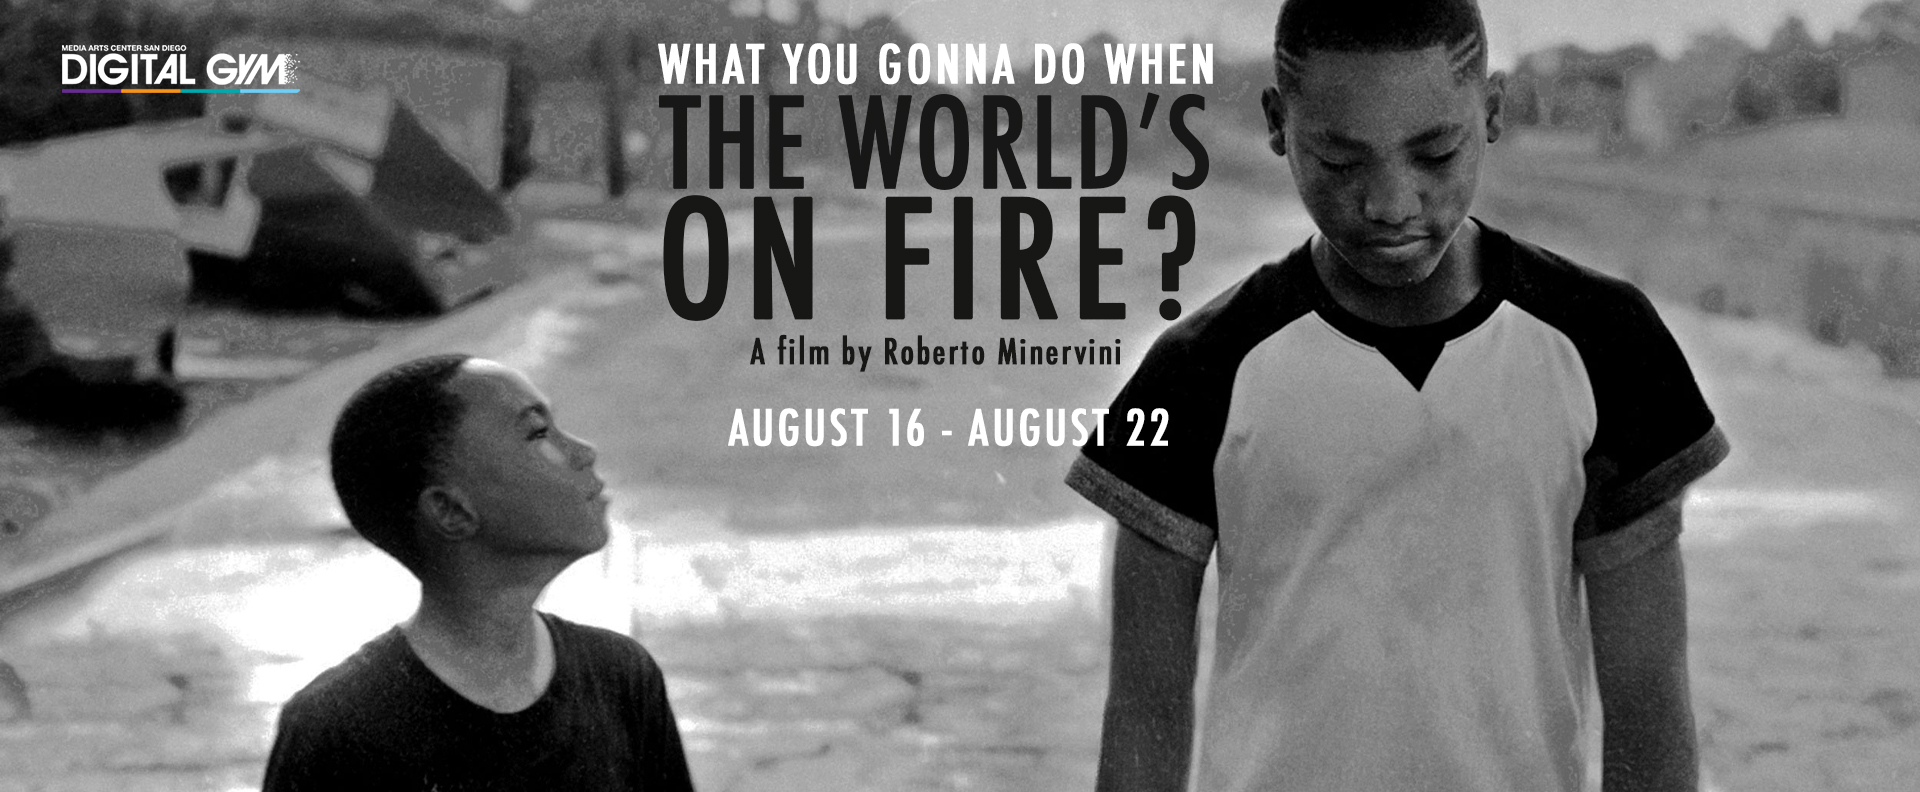 What You Gonna Do When The World's On Fire? (August 16 – August 22)